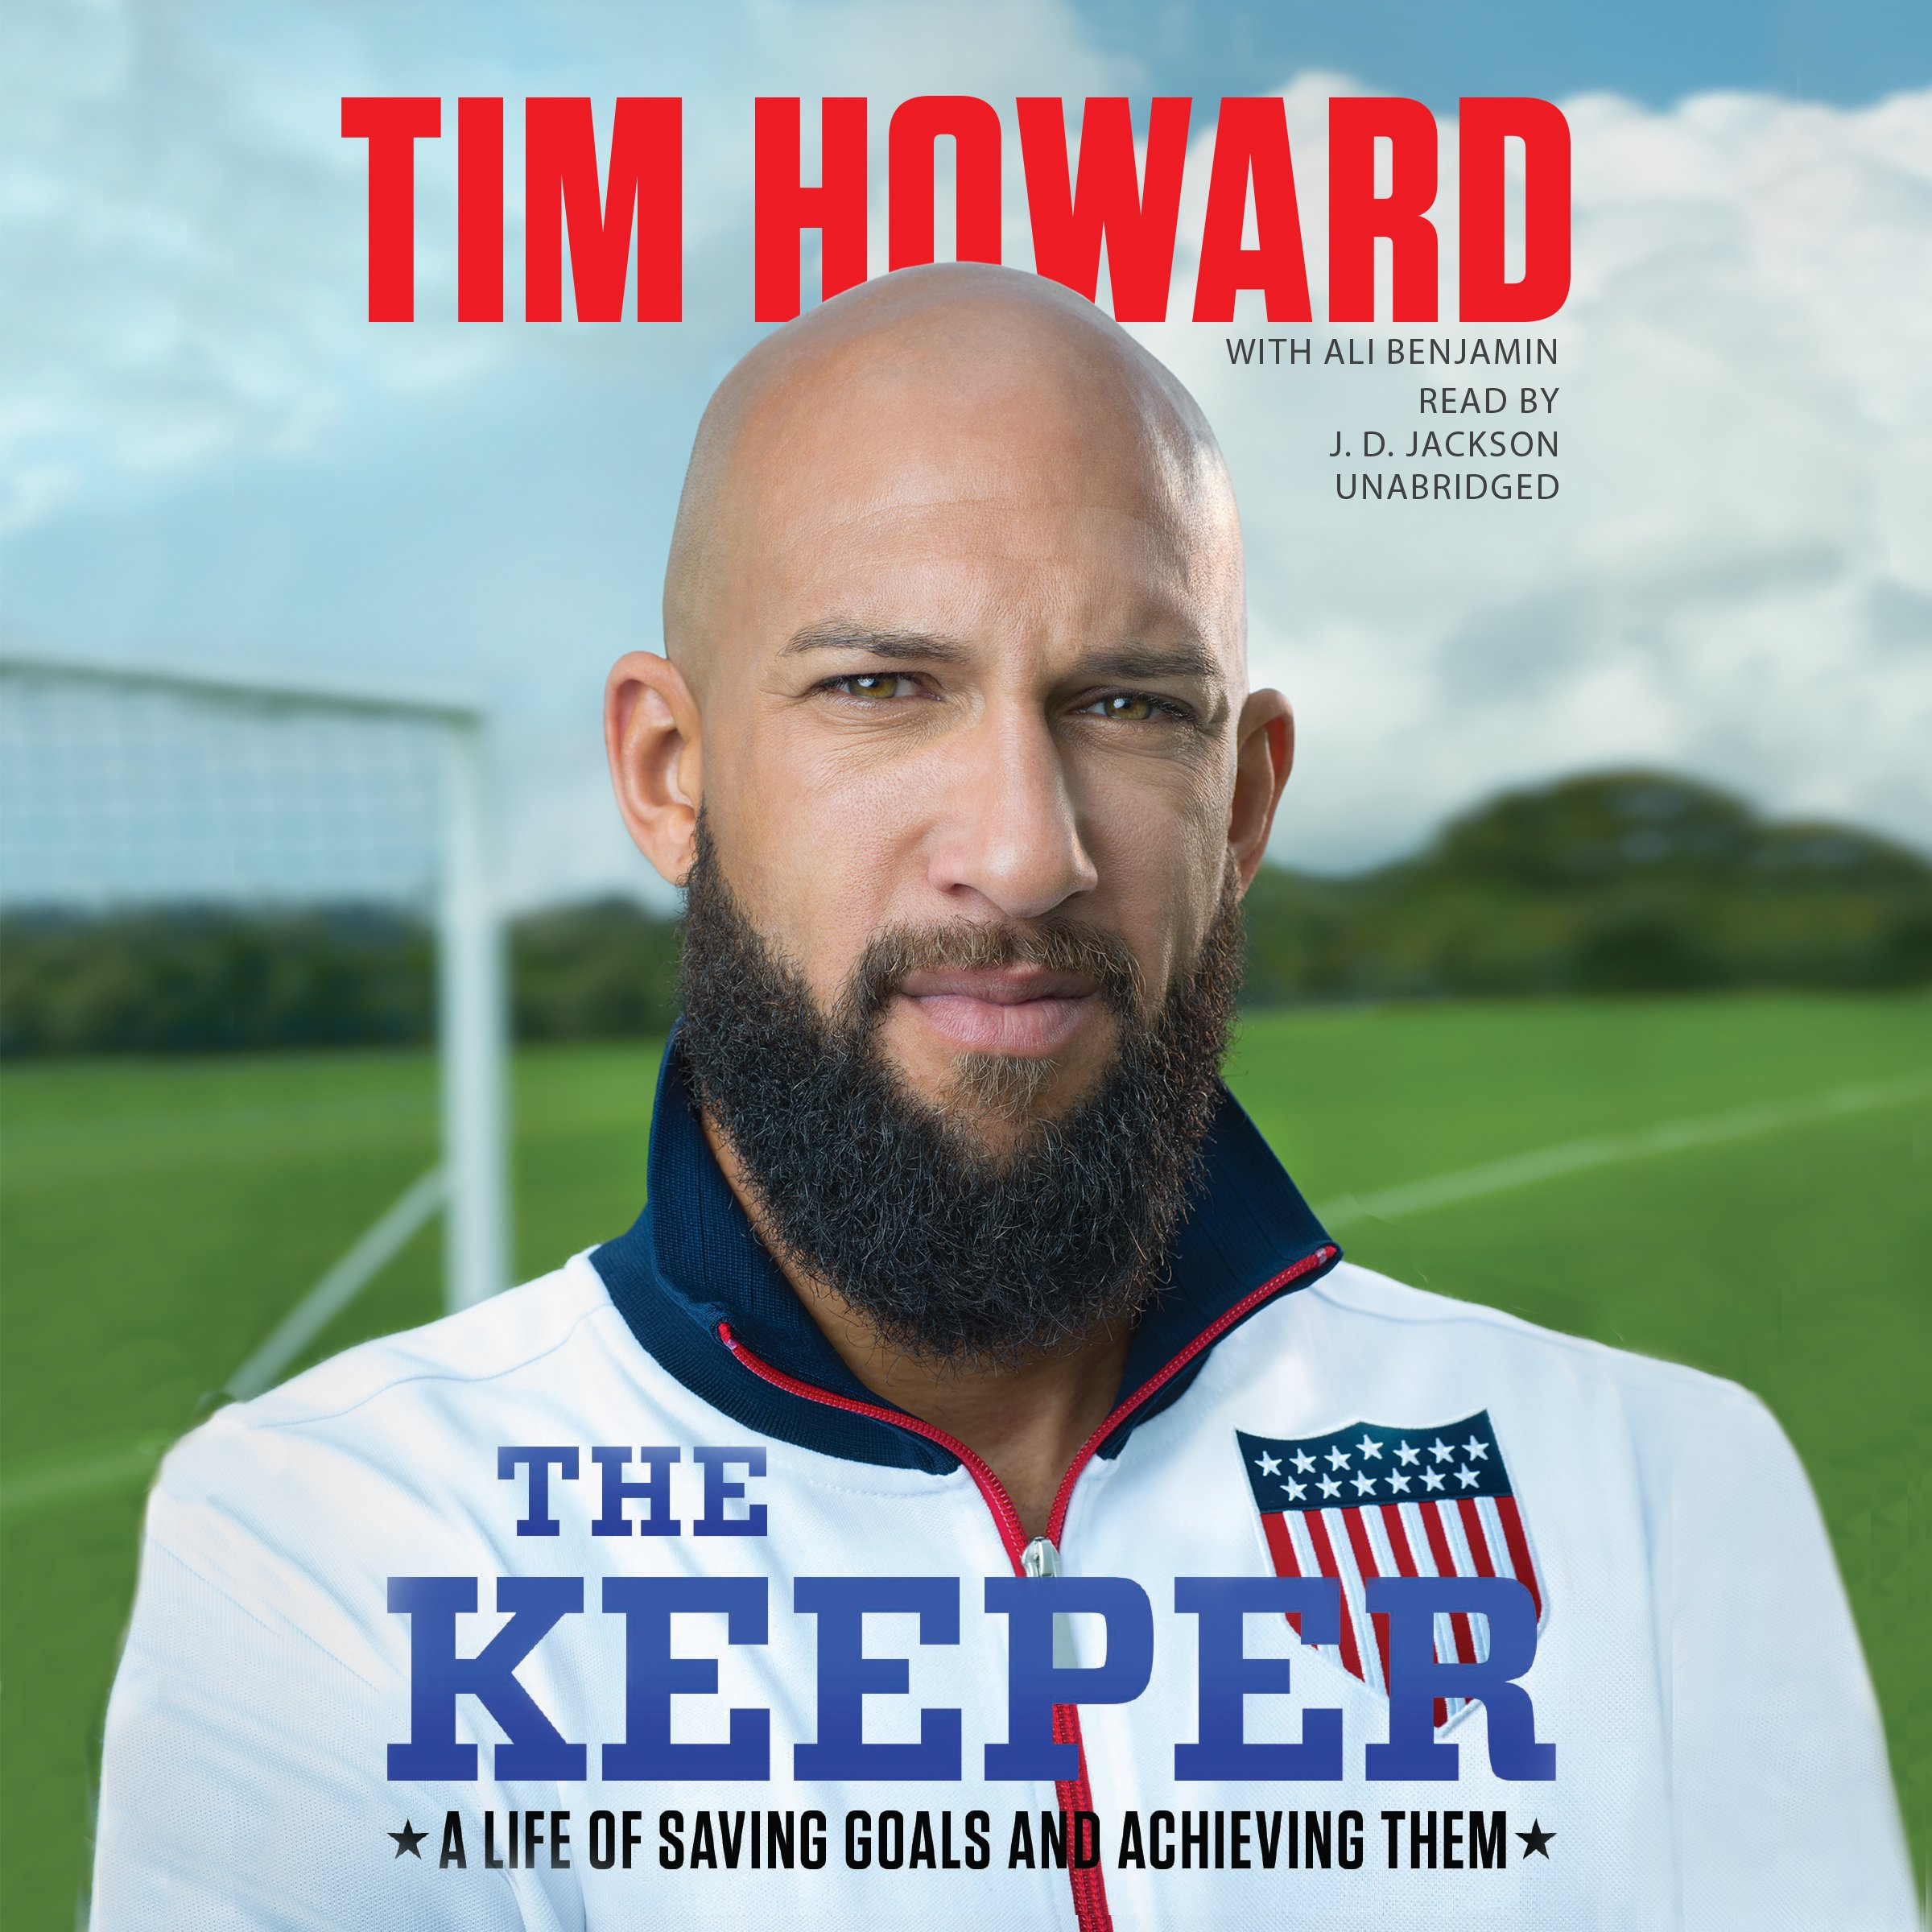 The Keeper: A Life of Saving Goals and Achieving Them; Library Edition